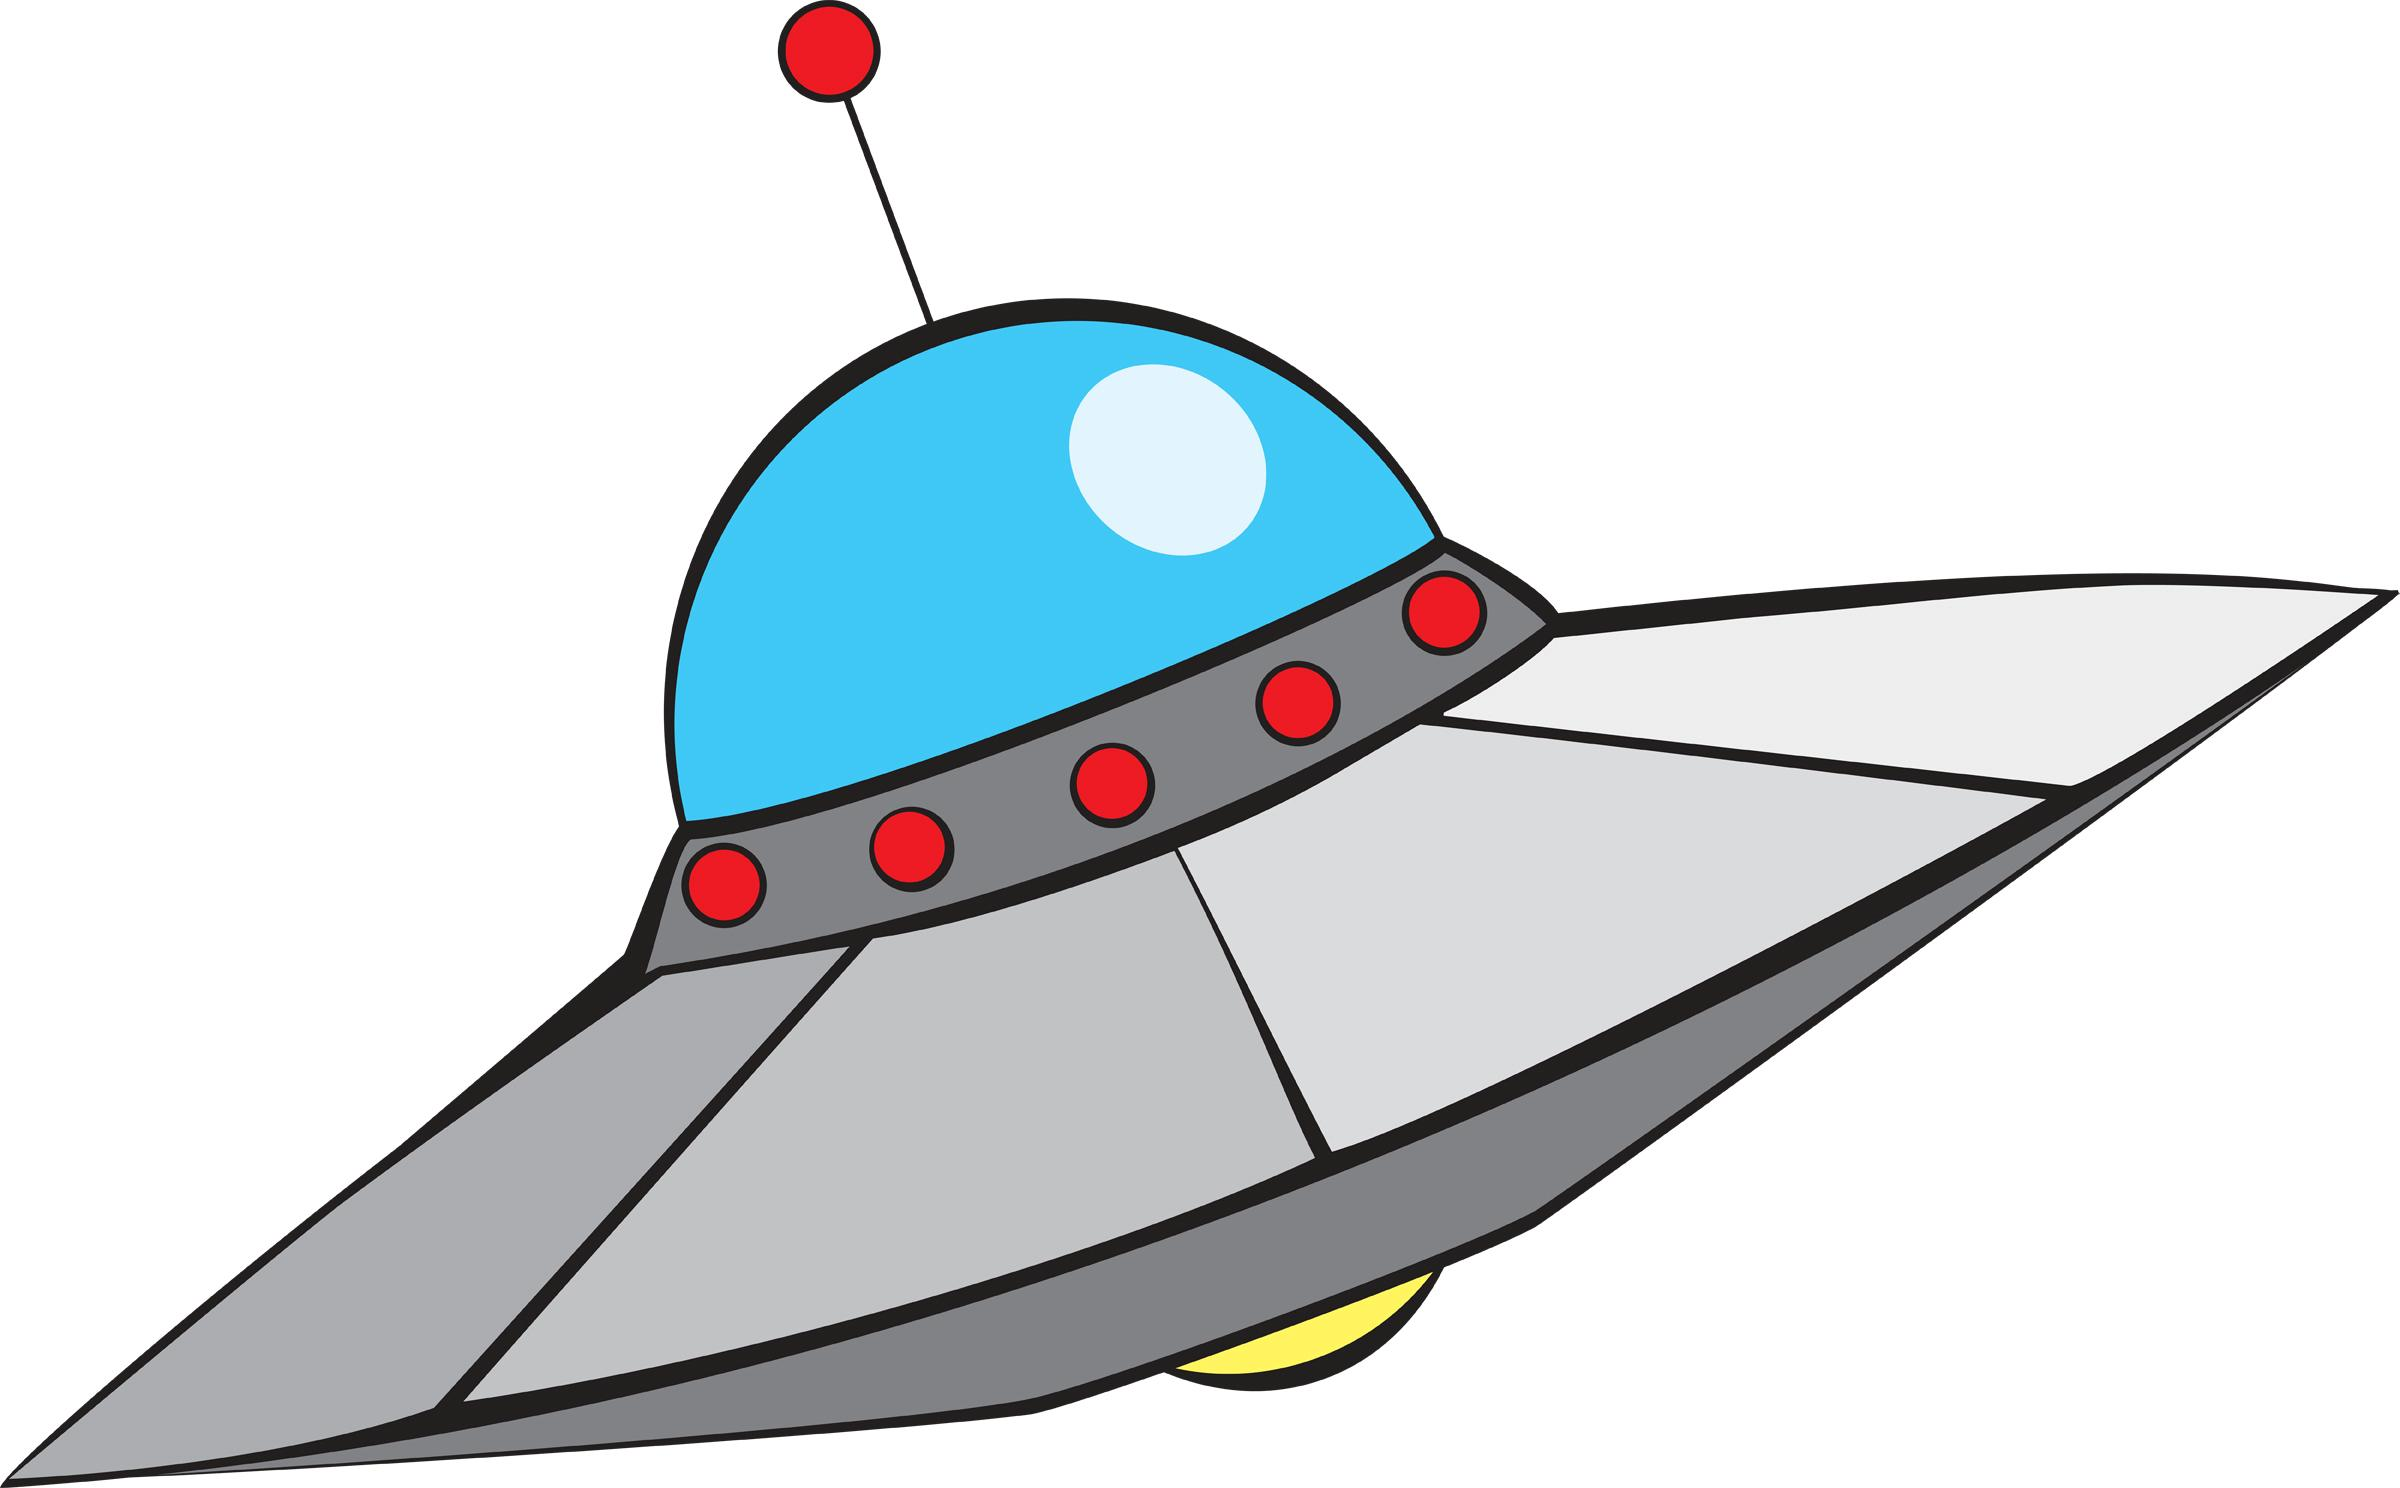 space ship clipart best spaceship clipart transparent spaceship clipart in space